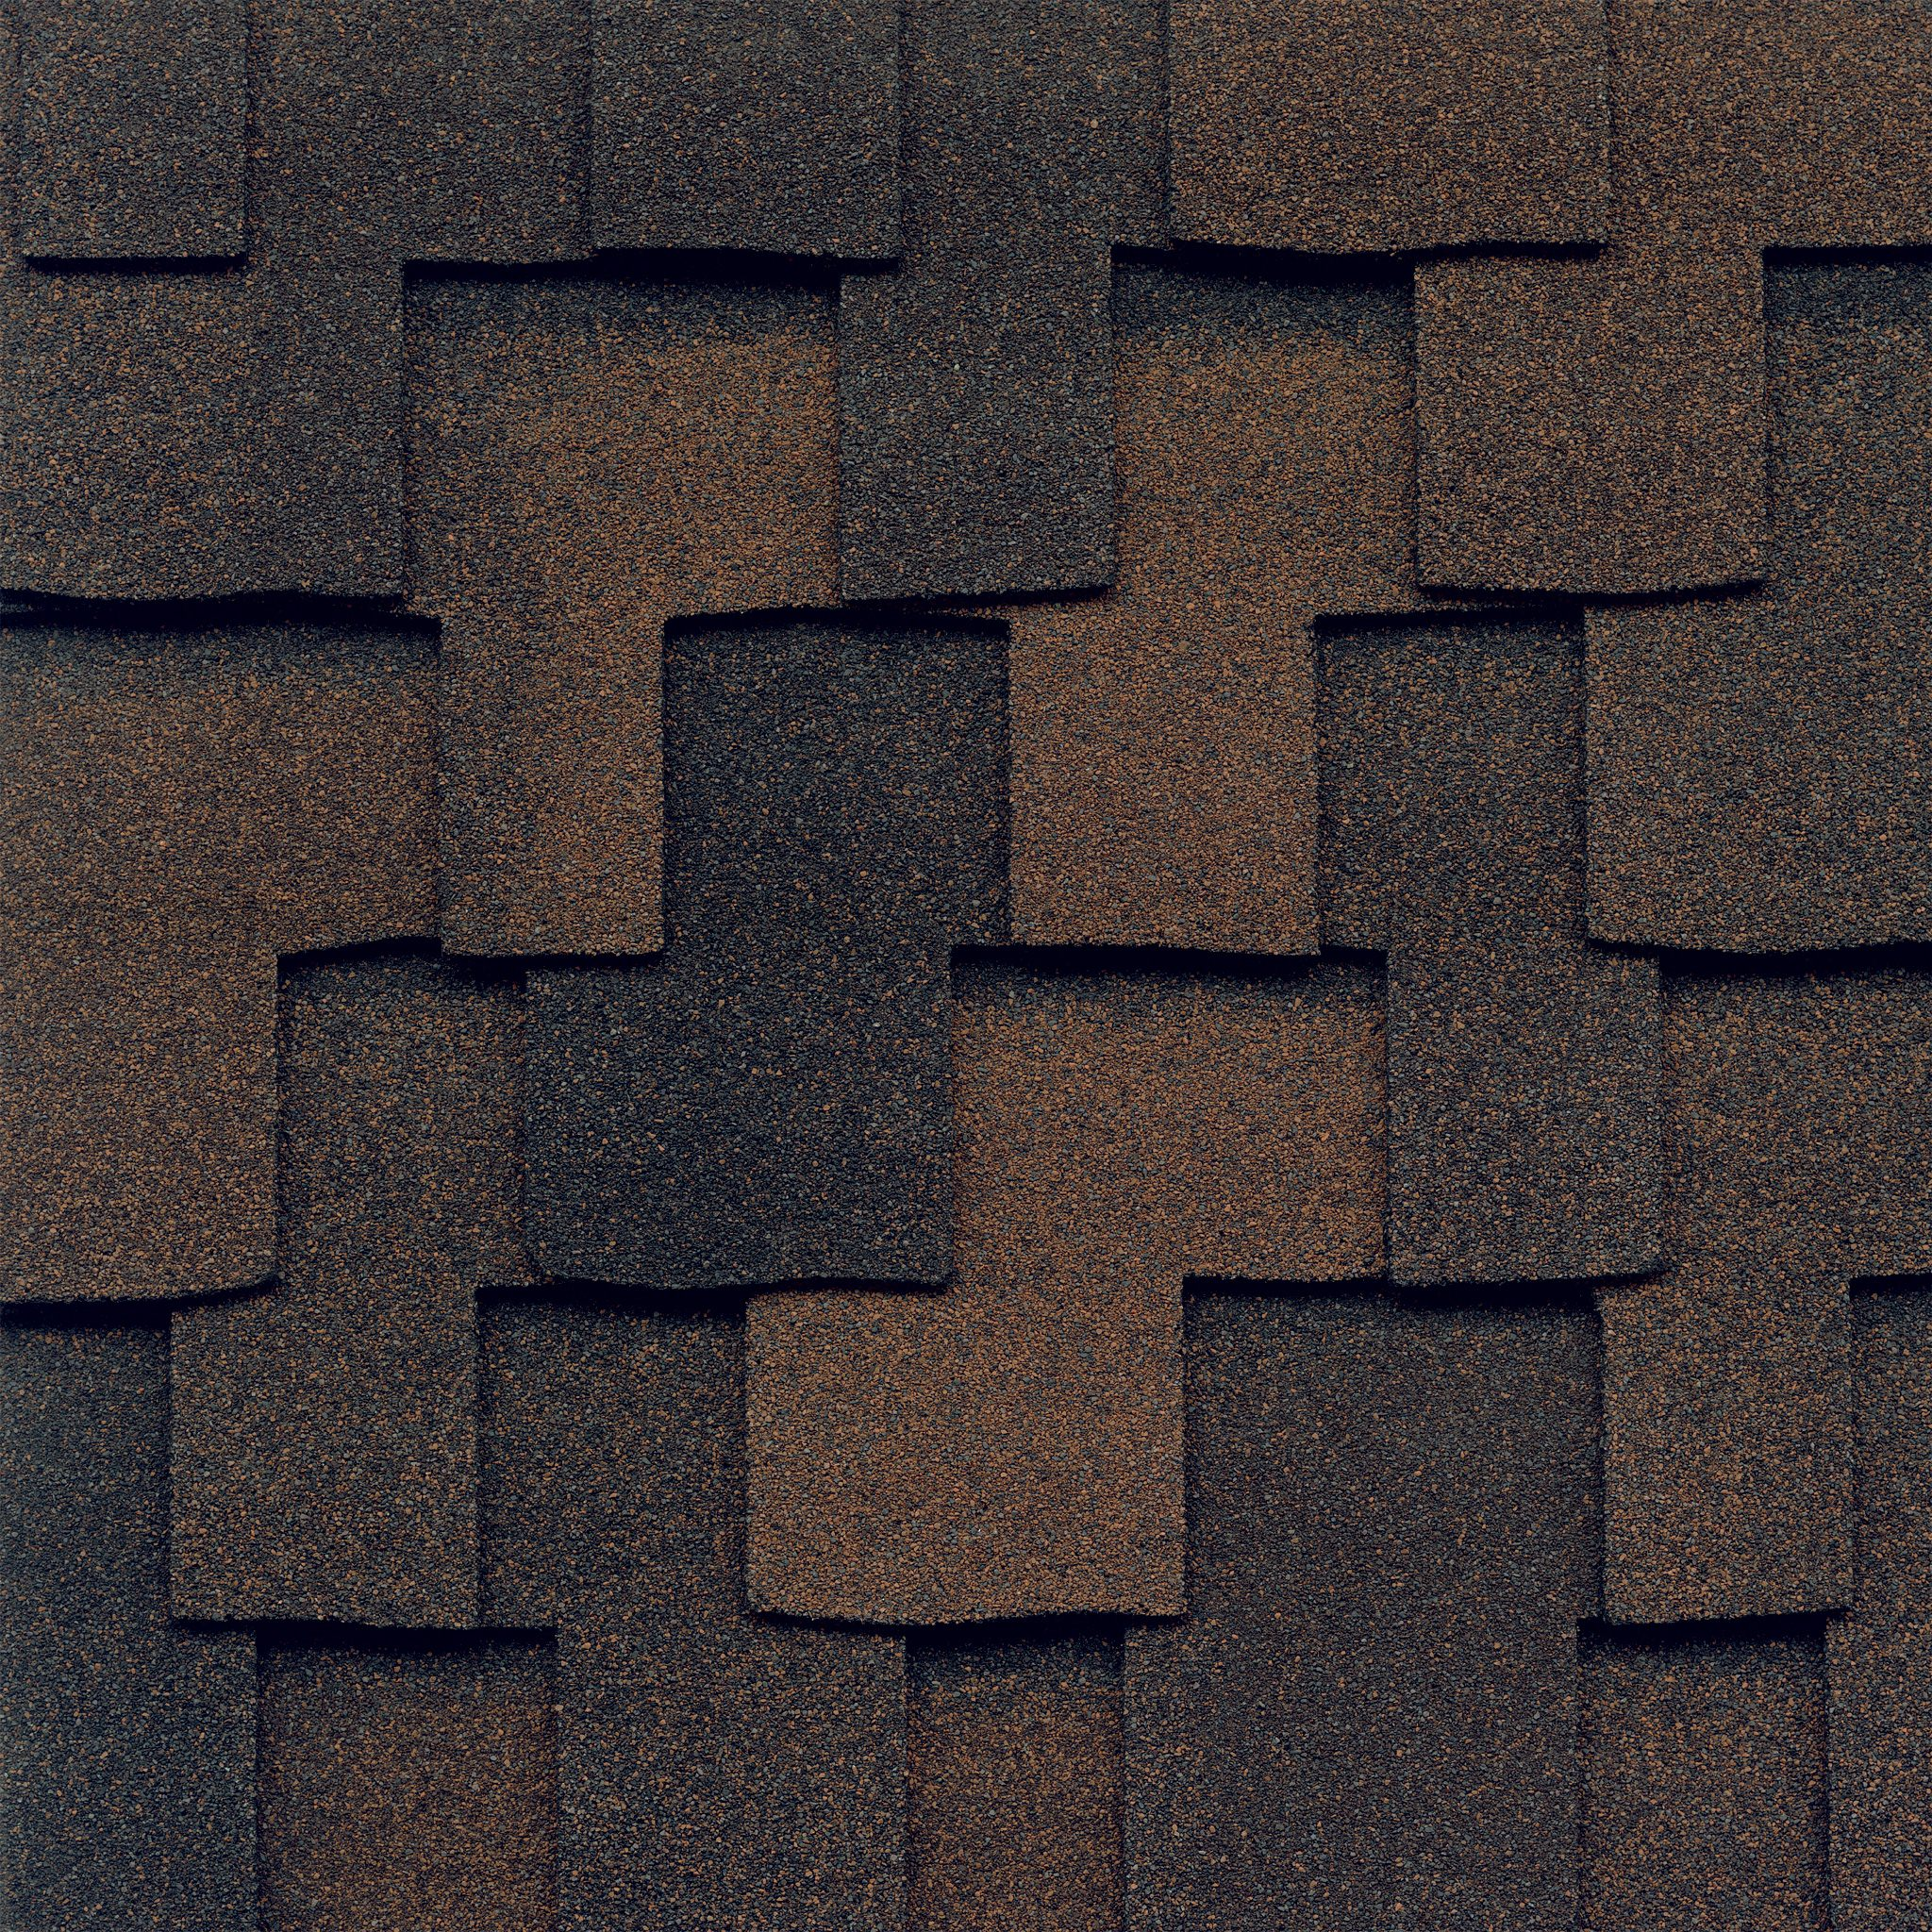 Close-up photo of GAF's Grand Canyon Sedona Sunset shingle swatch